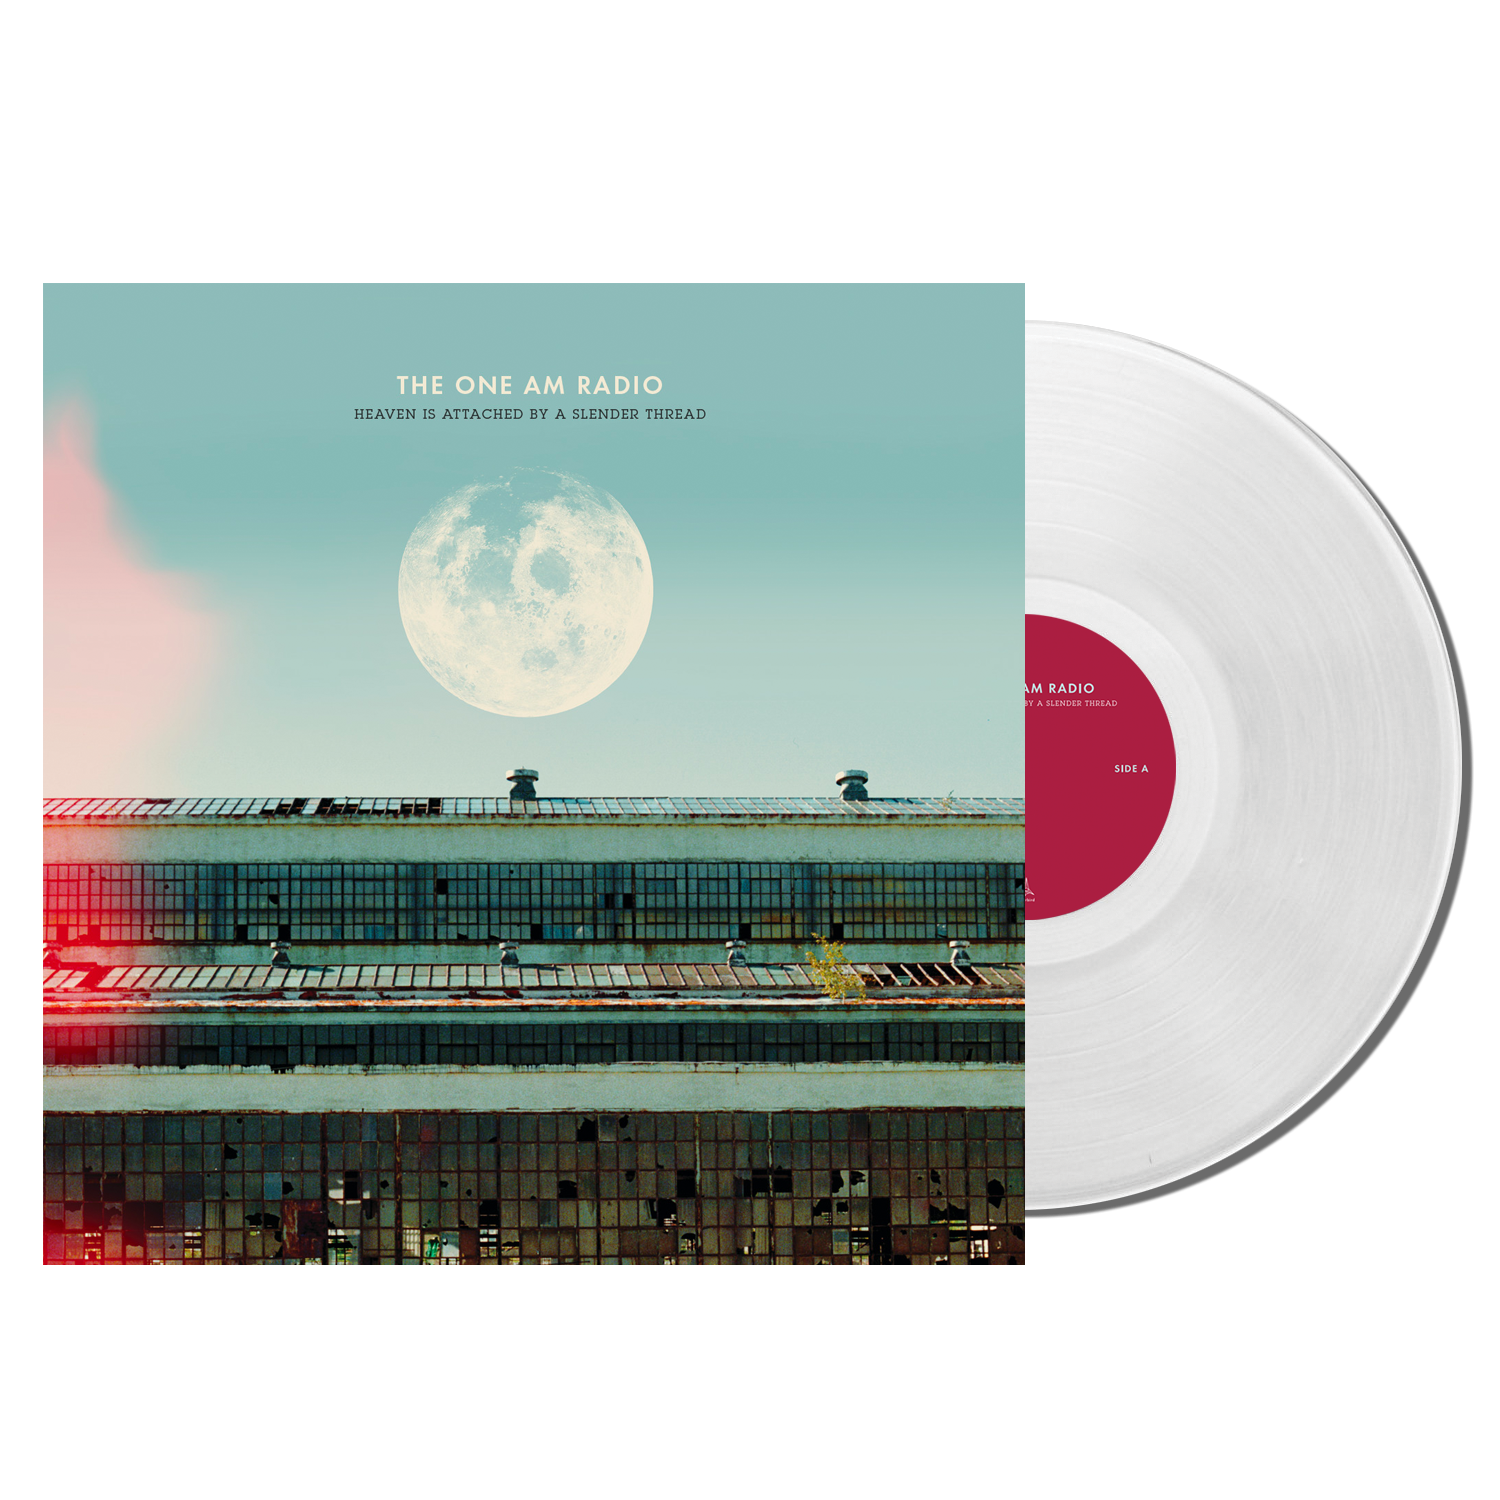 The One AM Radio - Heaven is Attached by a Slender Thread - Clear LP